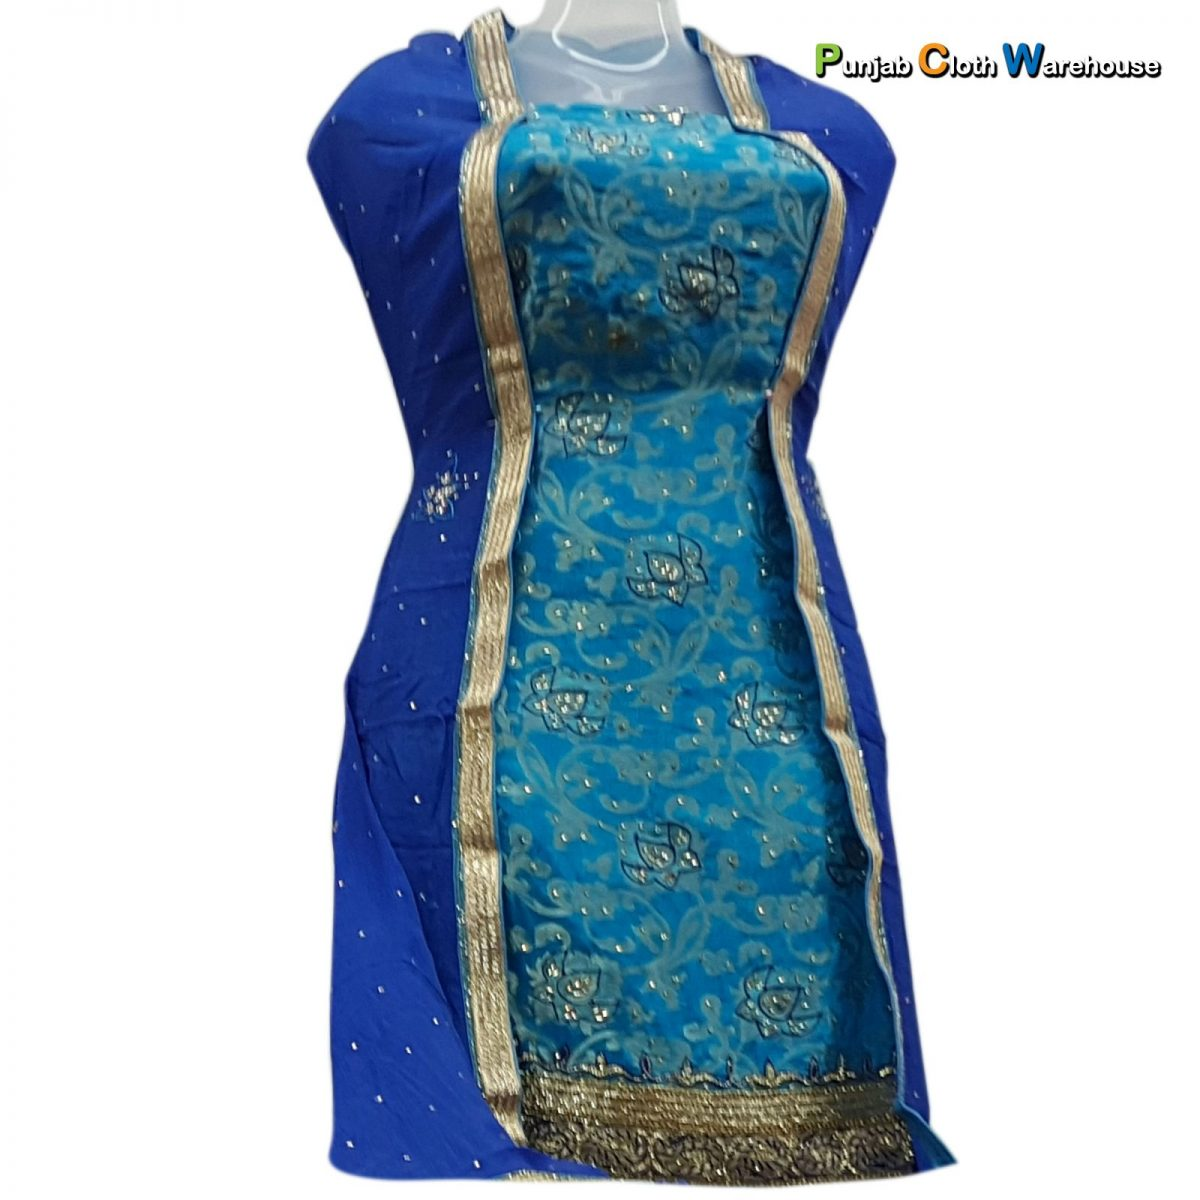 Ladies Suits - Cut Piece - Punjab Cloth Warehouse, Surrey (2)